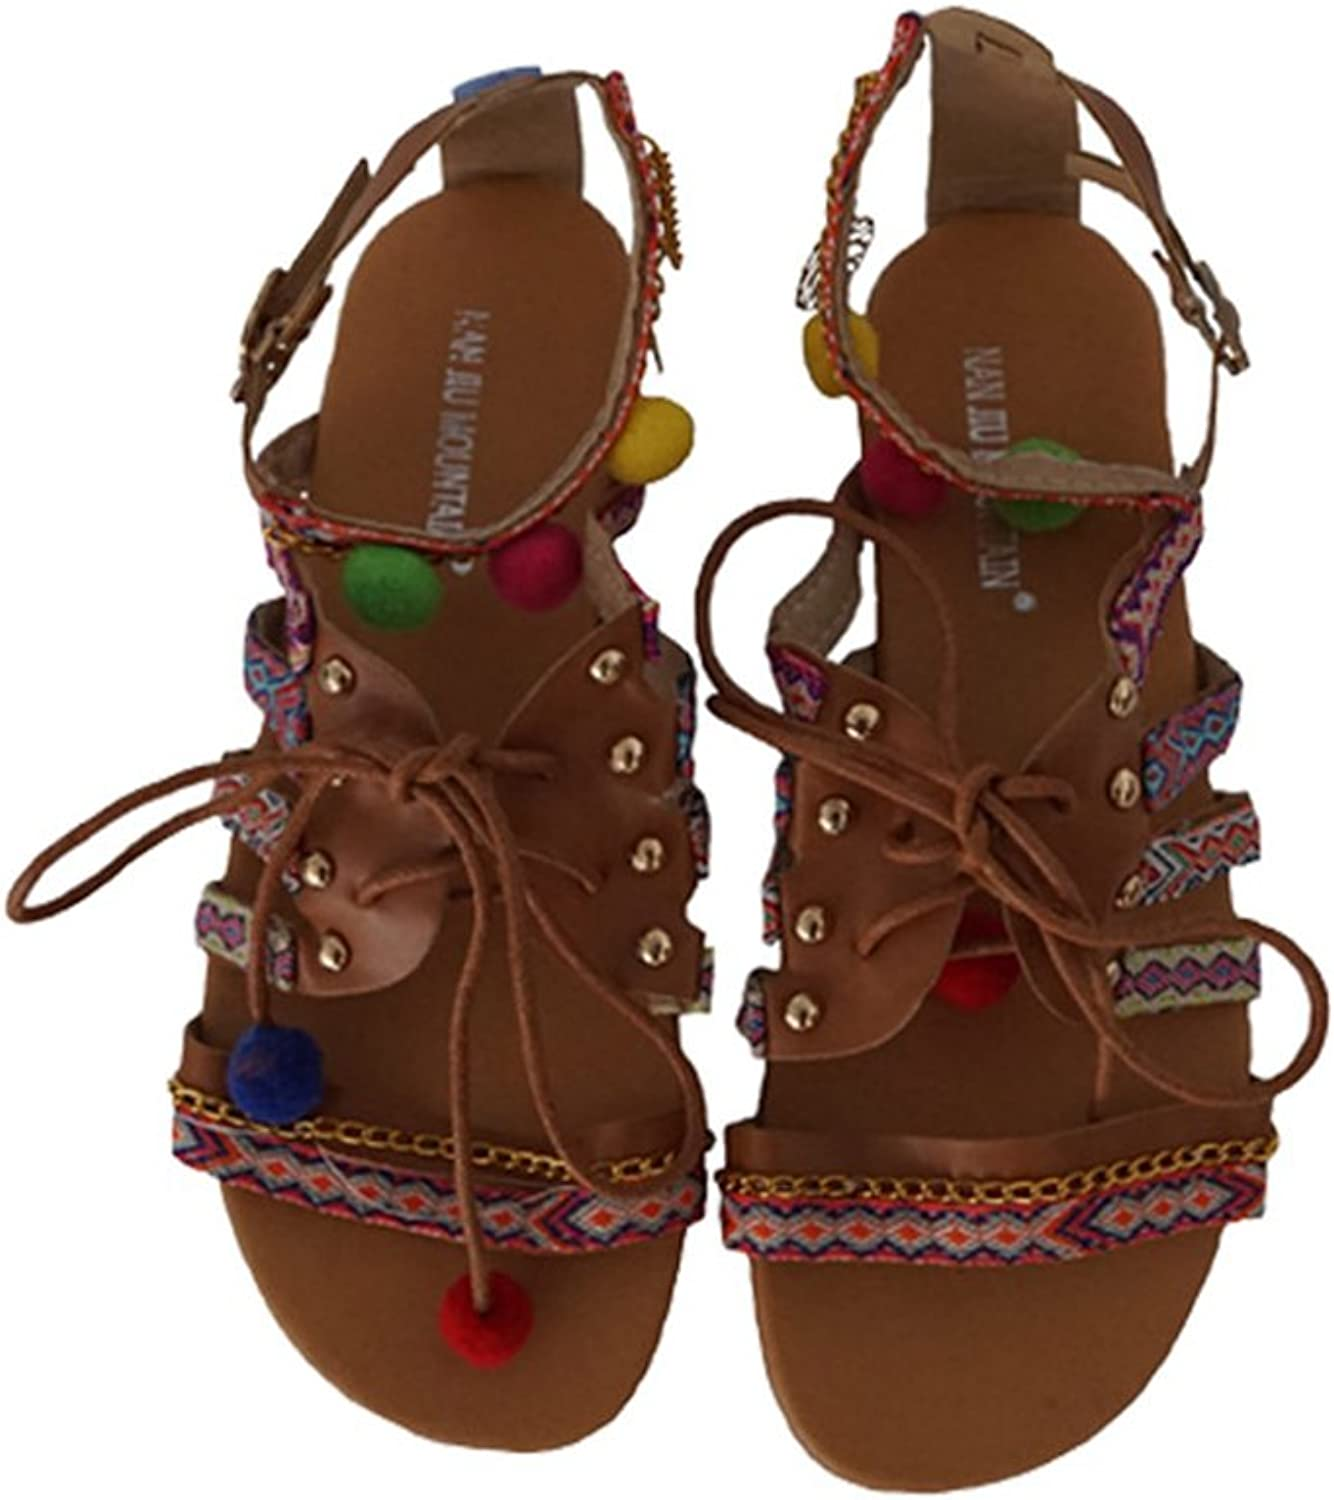 Womans Sandals Ethnic Bohemian Pompon Gladiator Strappy Embroidered Flat Sandals